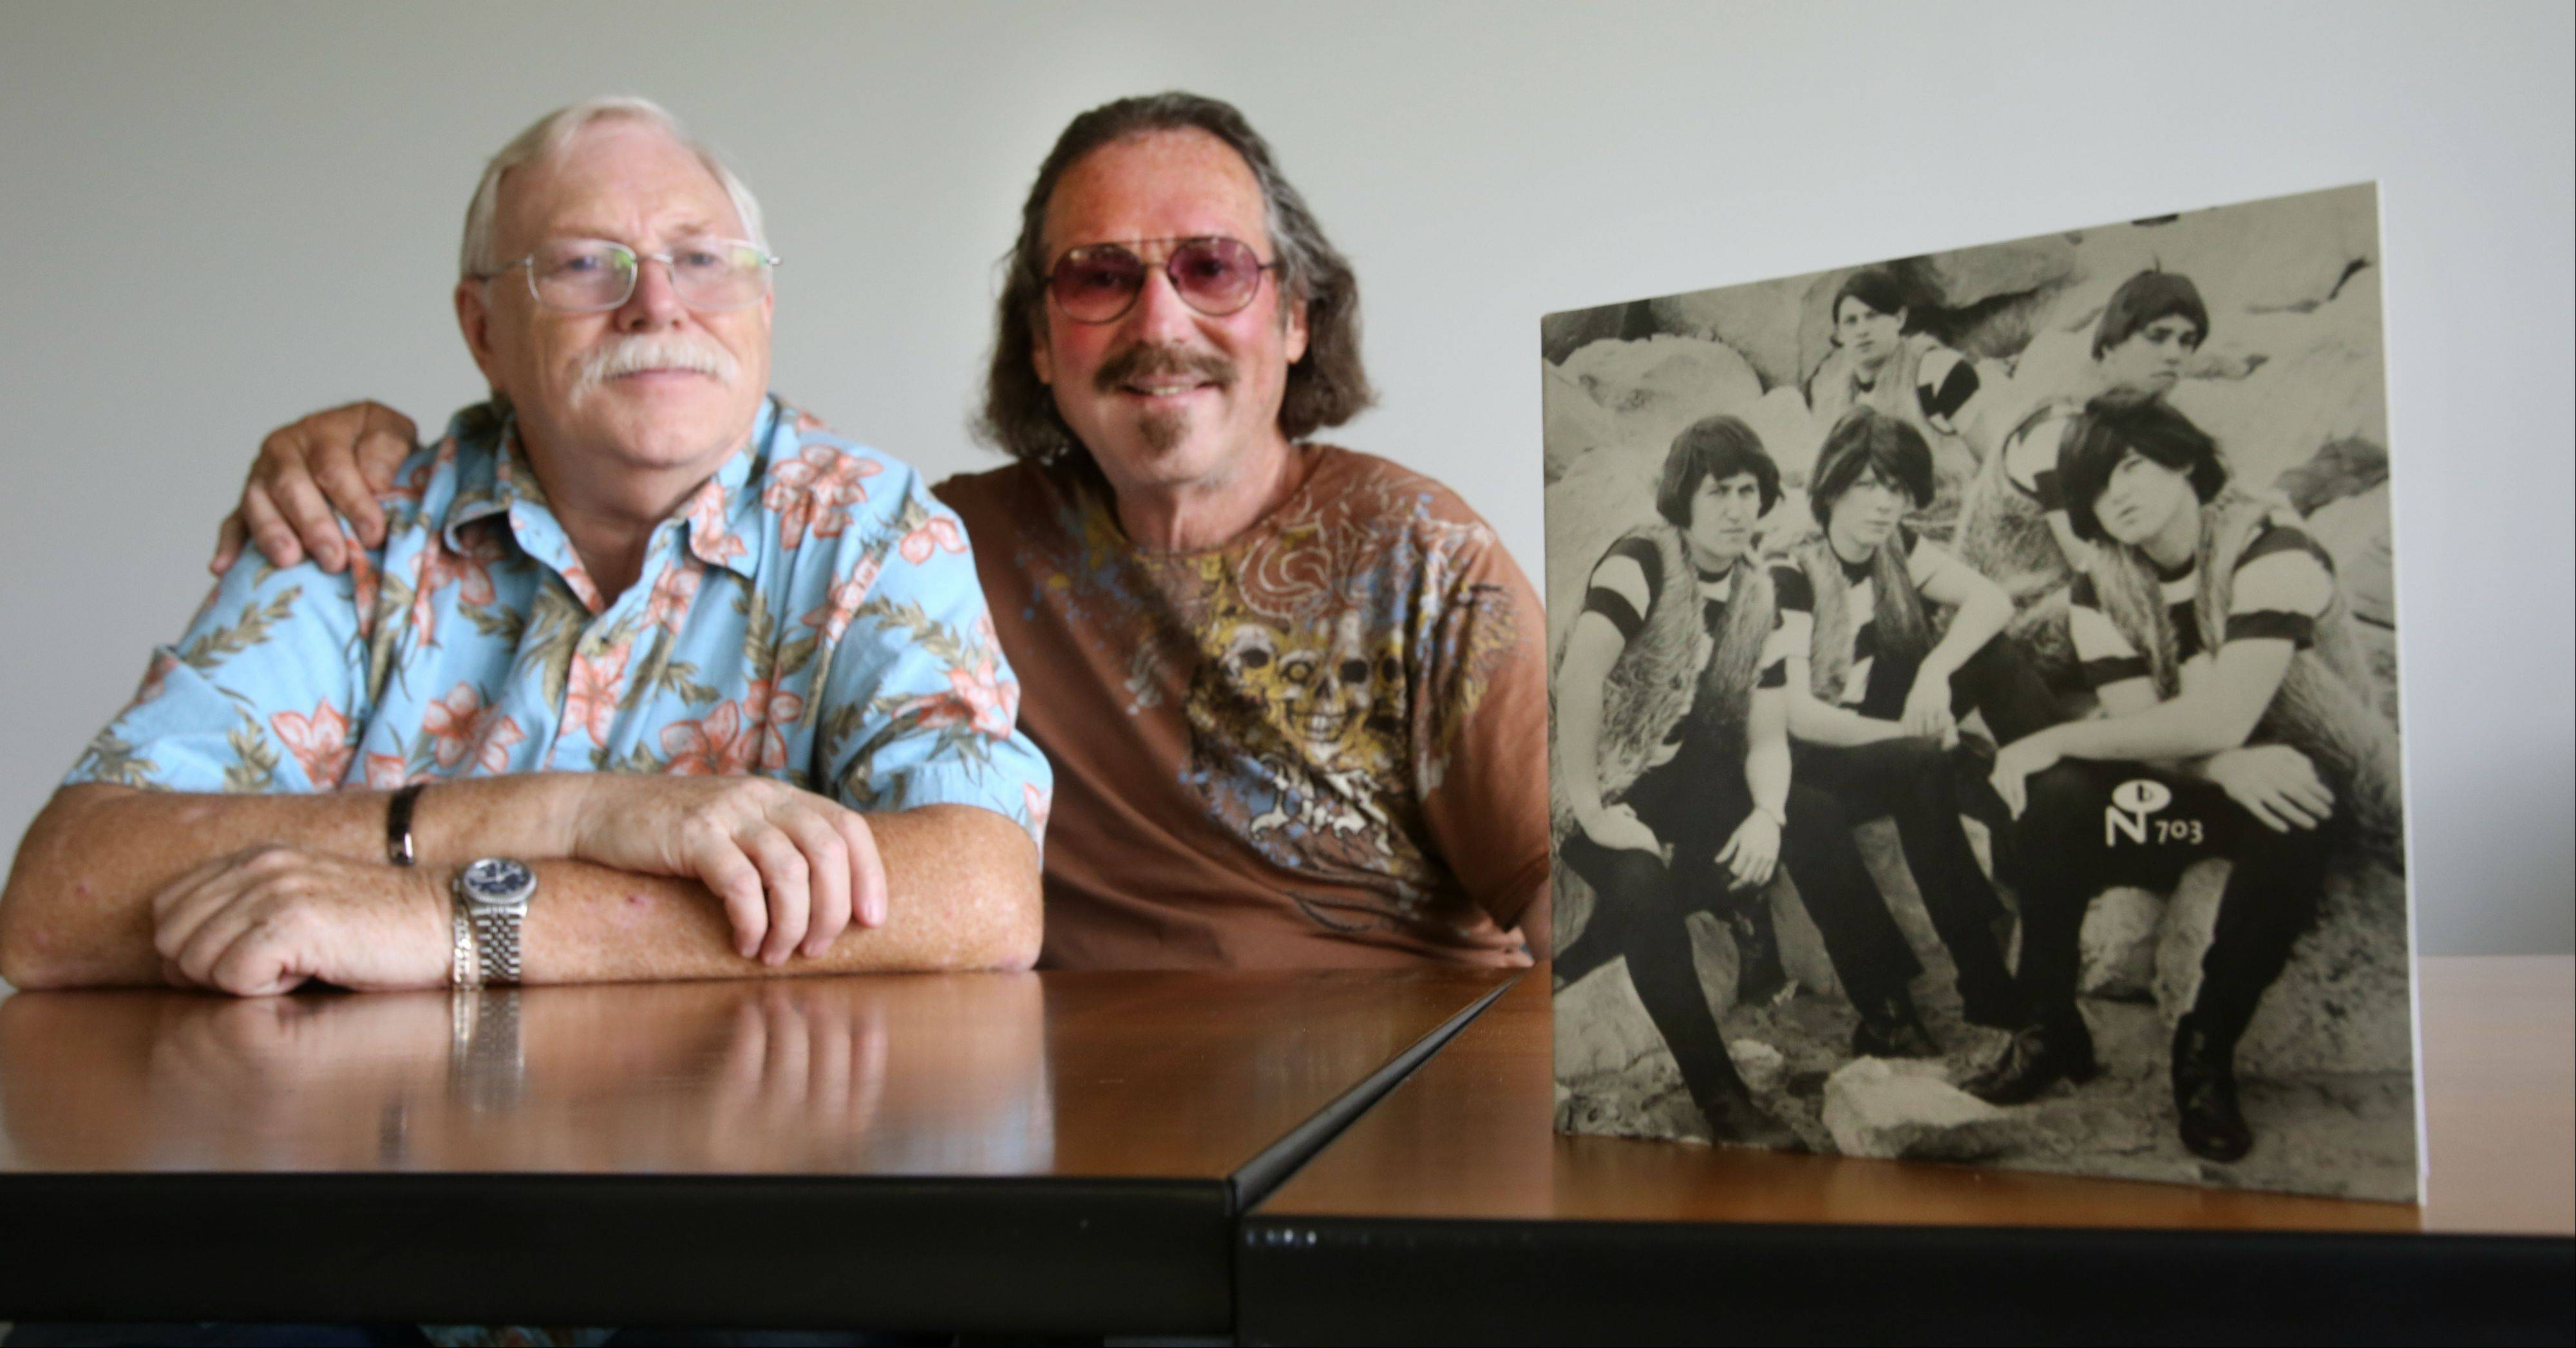 Despite disputes about their history in the 1960s garage-rock band the Cave Dwellers, former members Gary Goldberg, right, and Peter Budd have reunited and hope to play music together again.